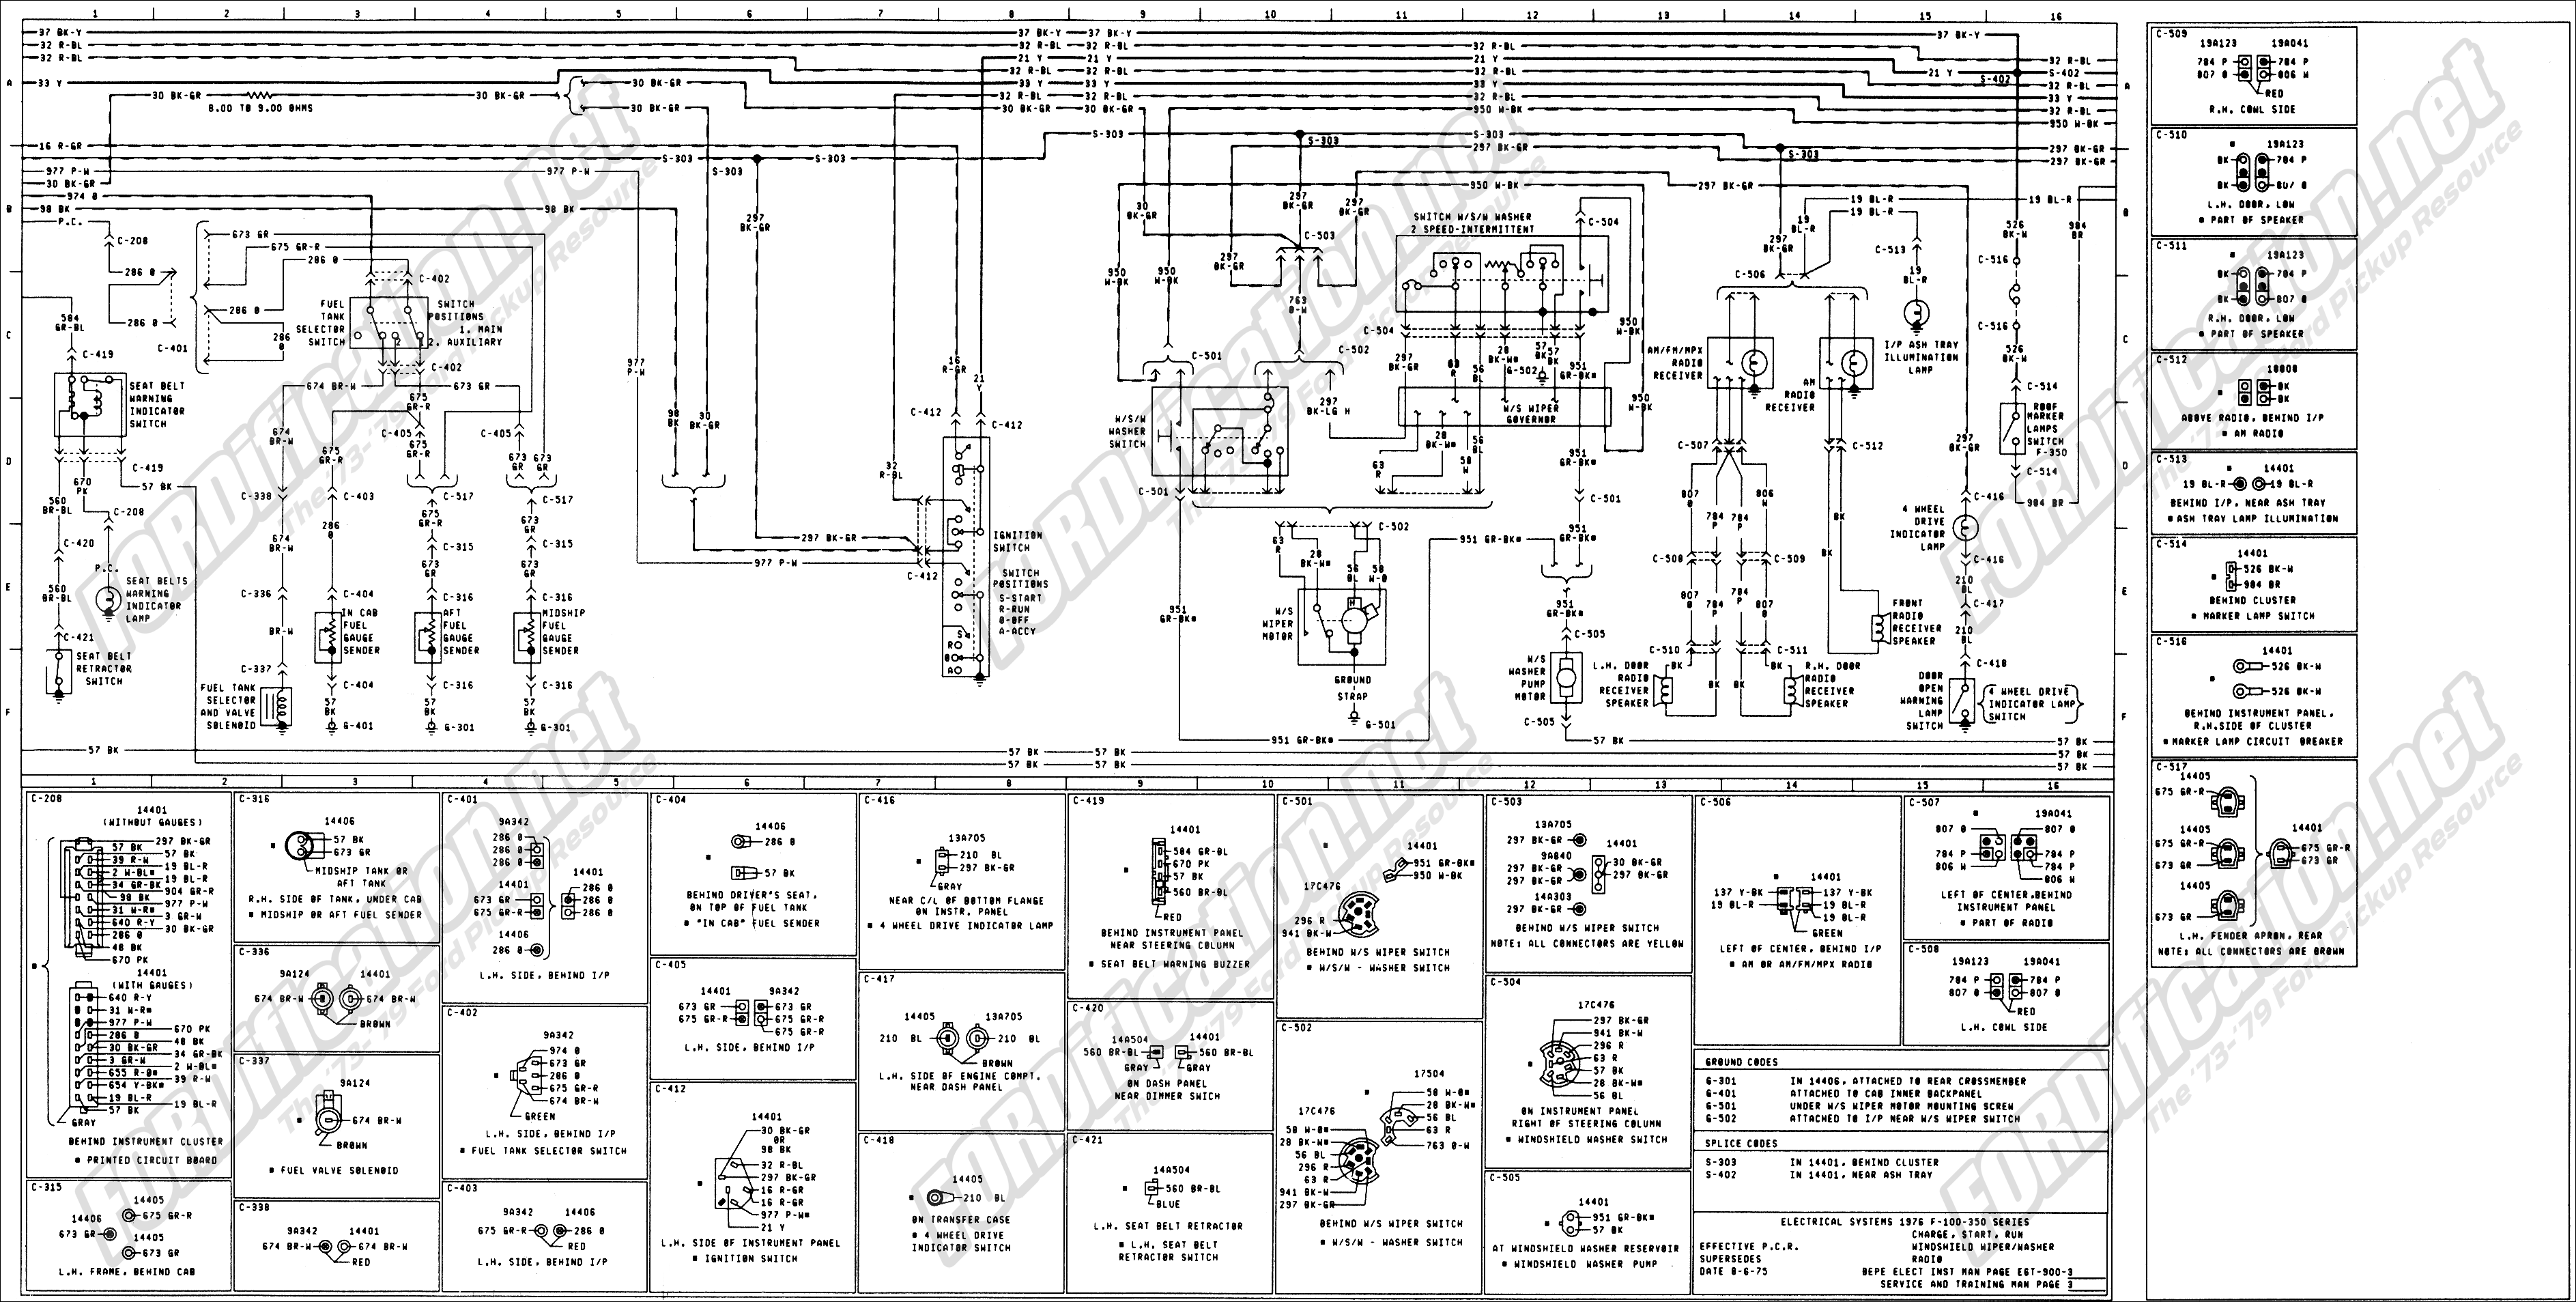 wiring_76master_3of9 1973 1979 ford truck wiring diagrams & schematics fordification net 2003 ford lightning wiring diagram at panicattacktreatment.co